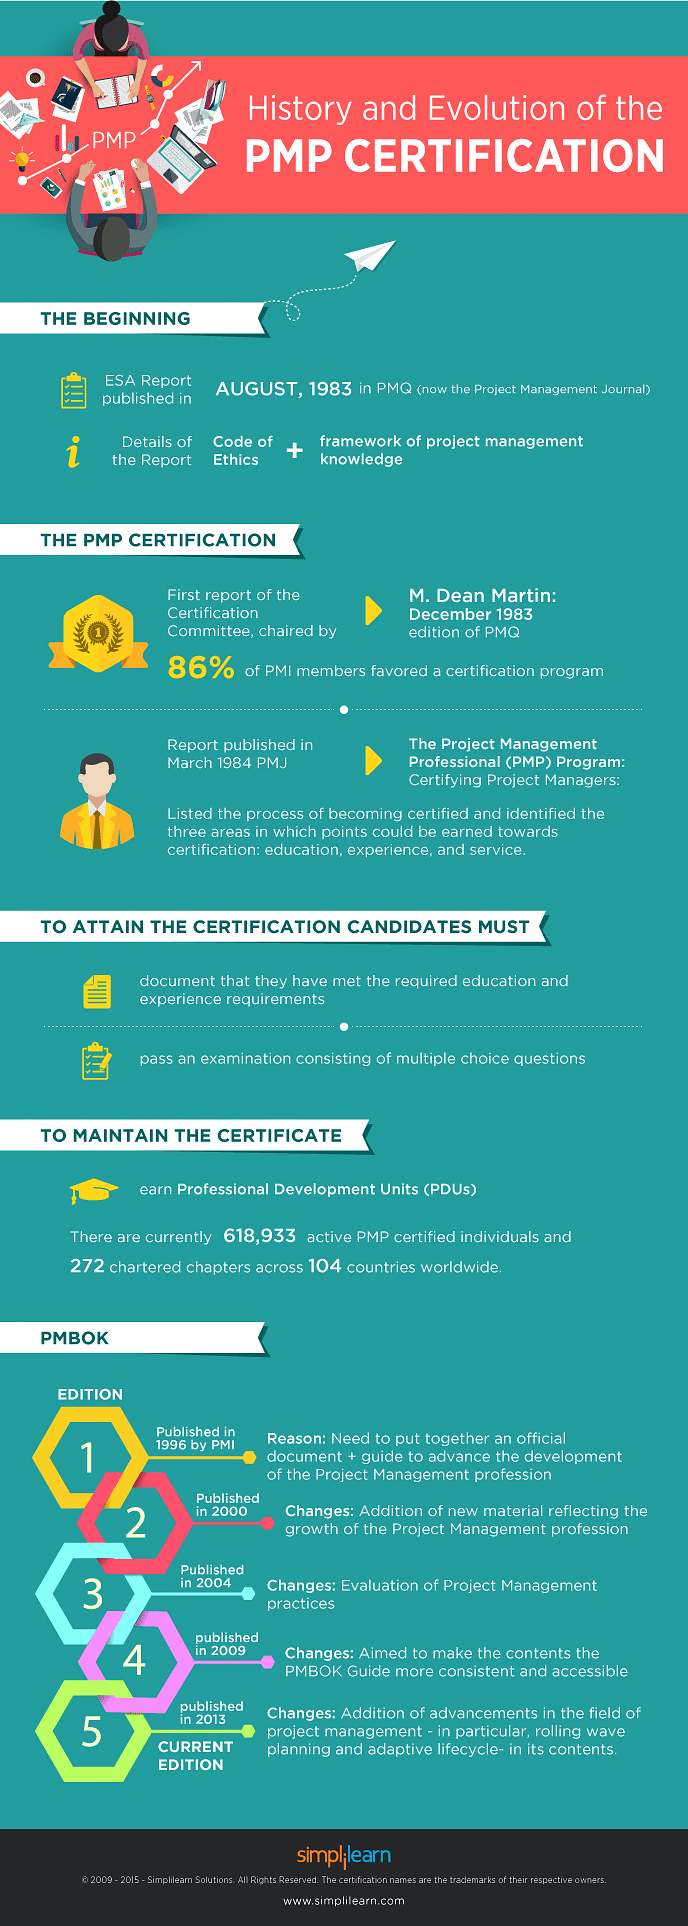 History And Evolution Of The Pmp Certification Simplilearn